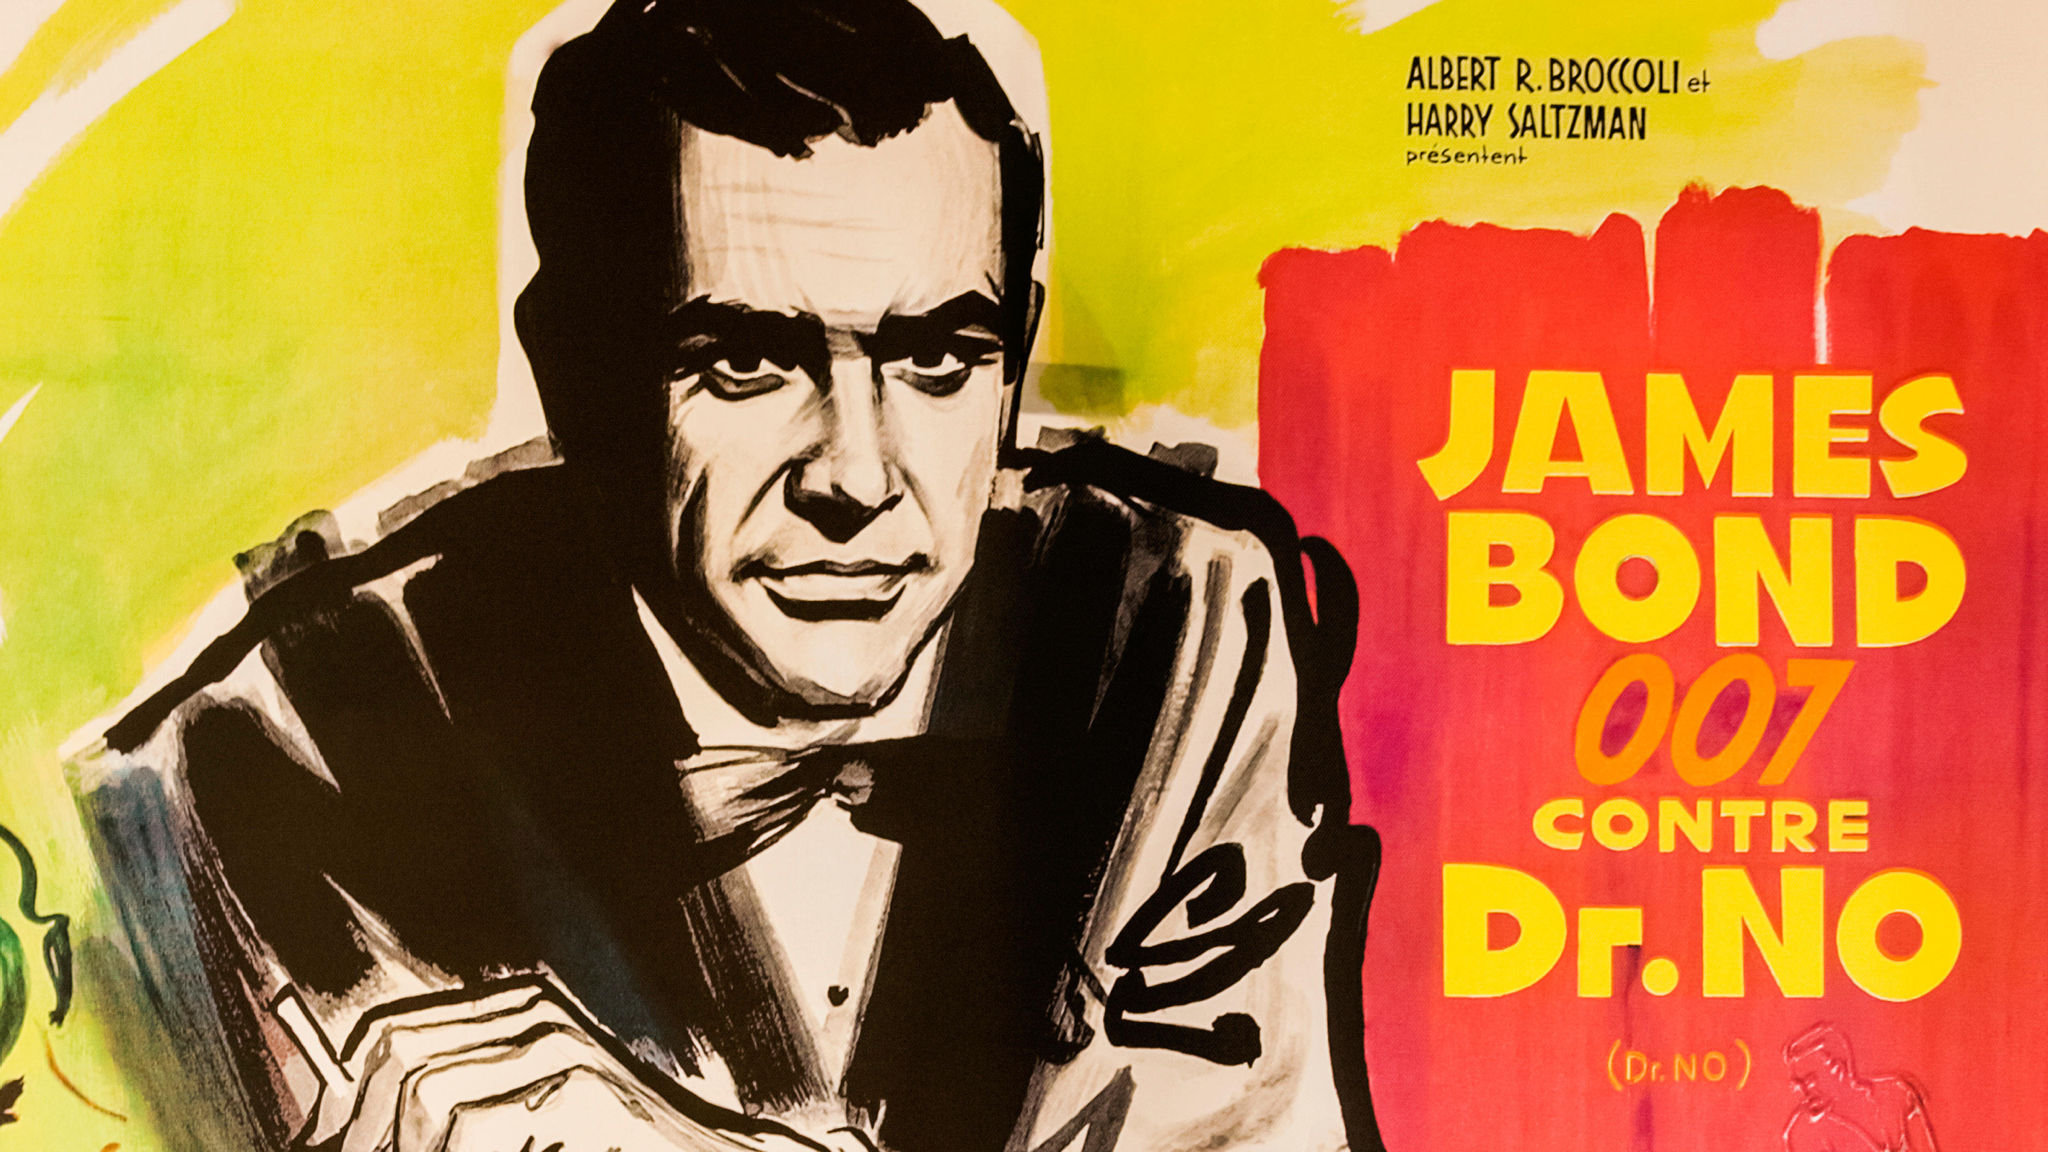 James Bond — a counter-cultural hero for our time